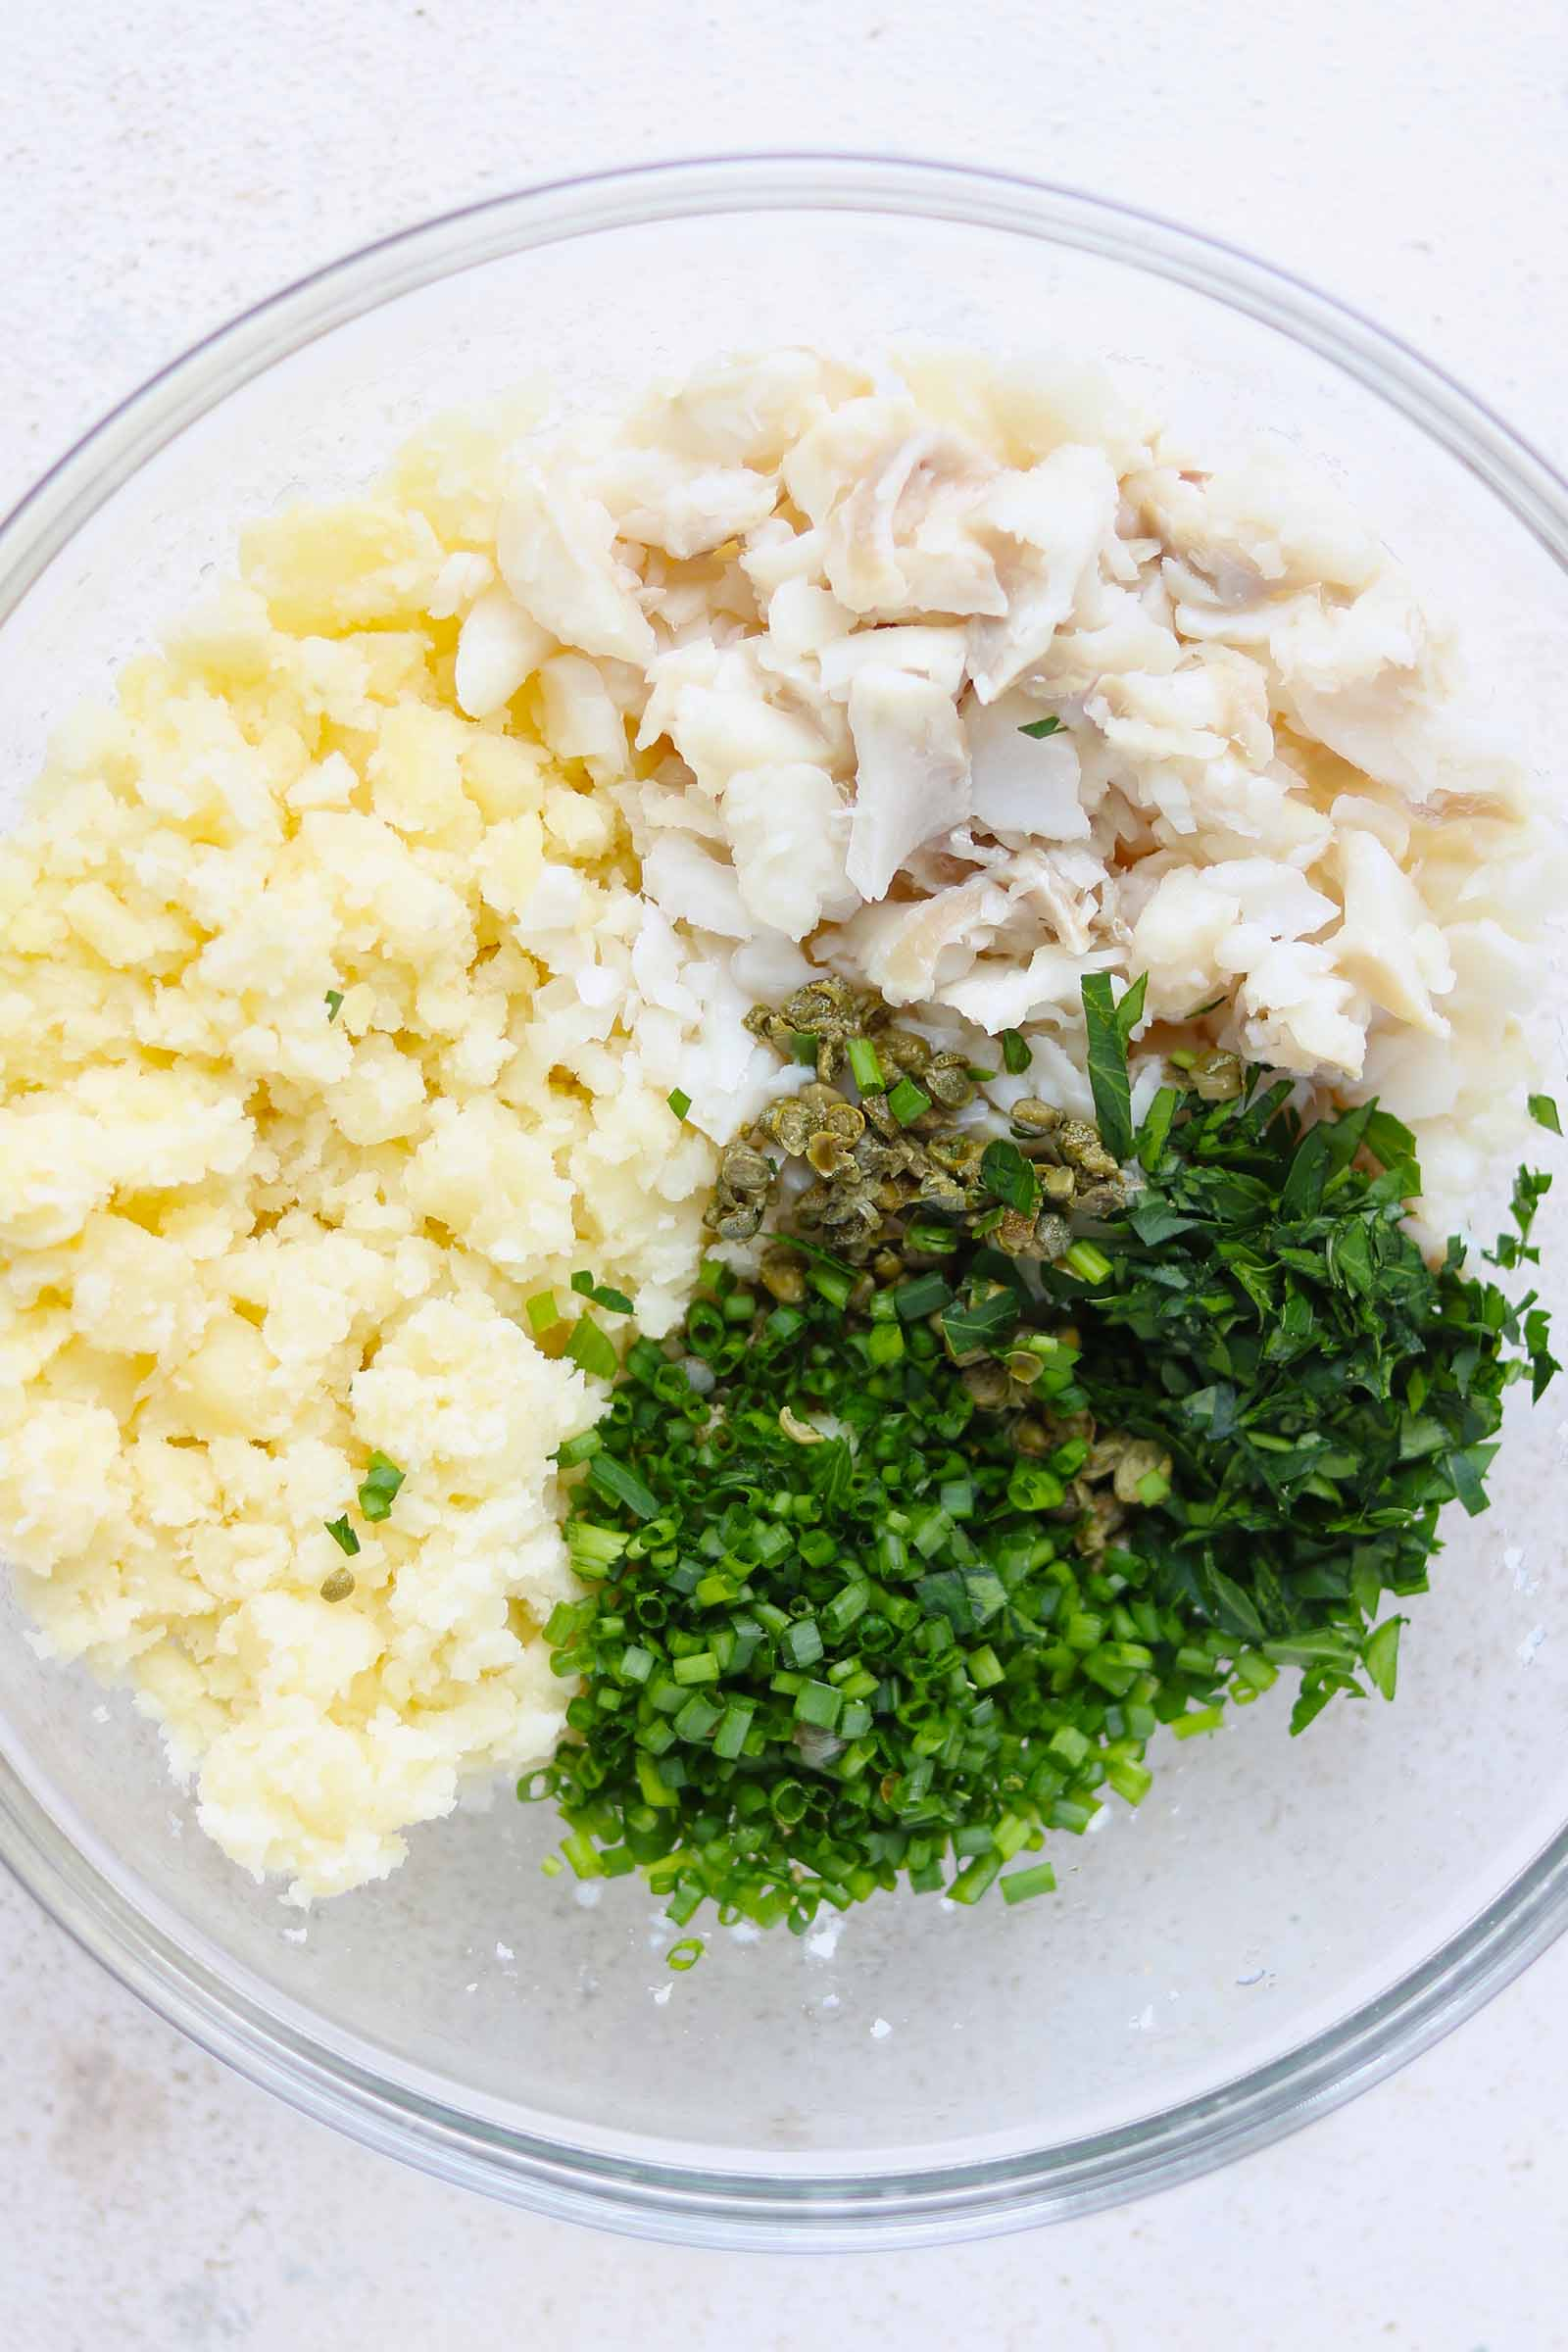 fish cake ingredients